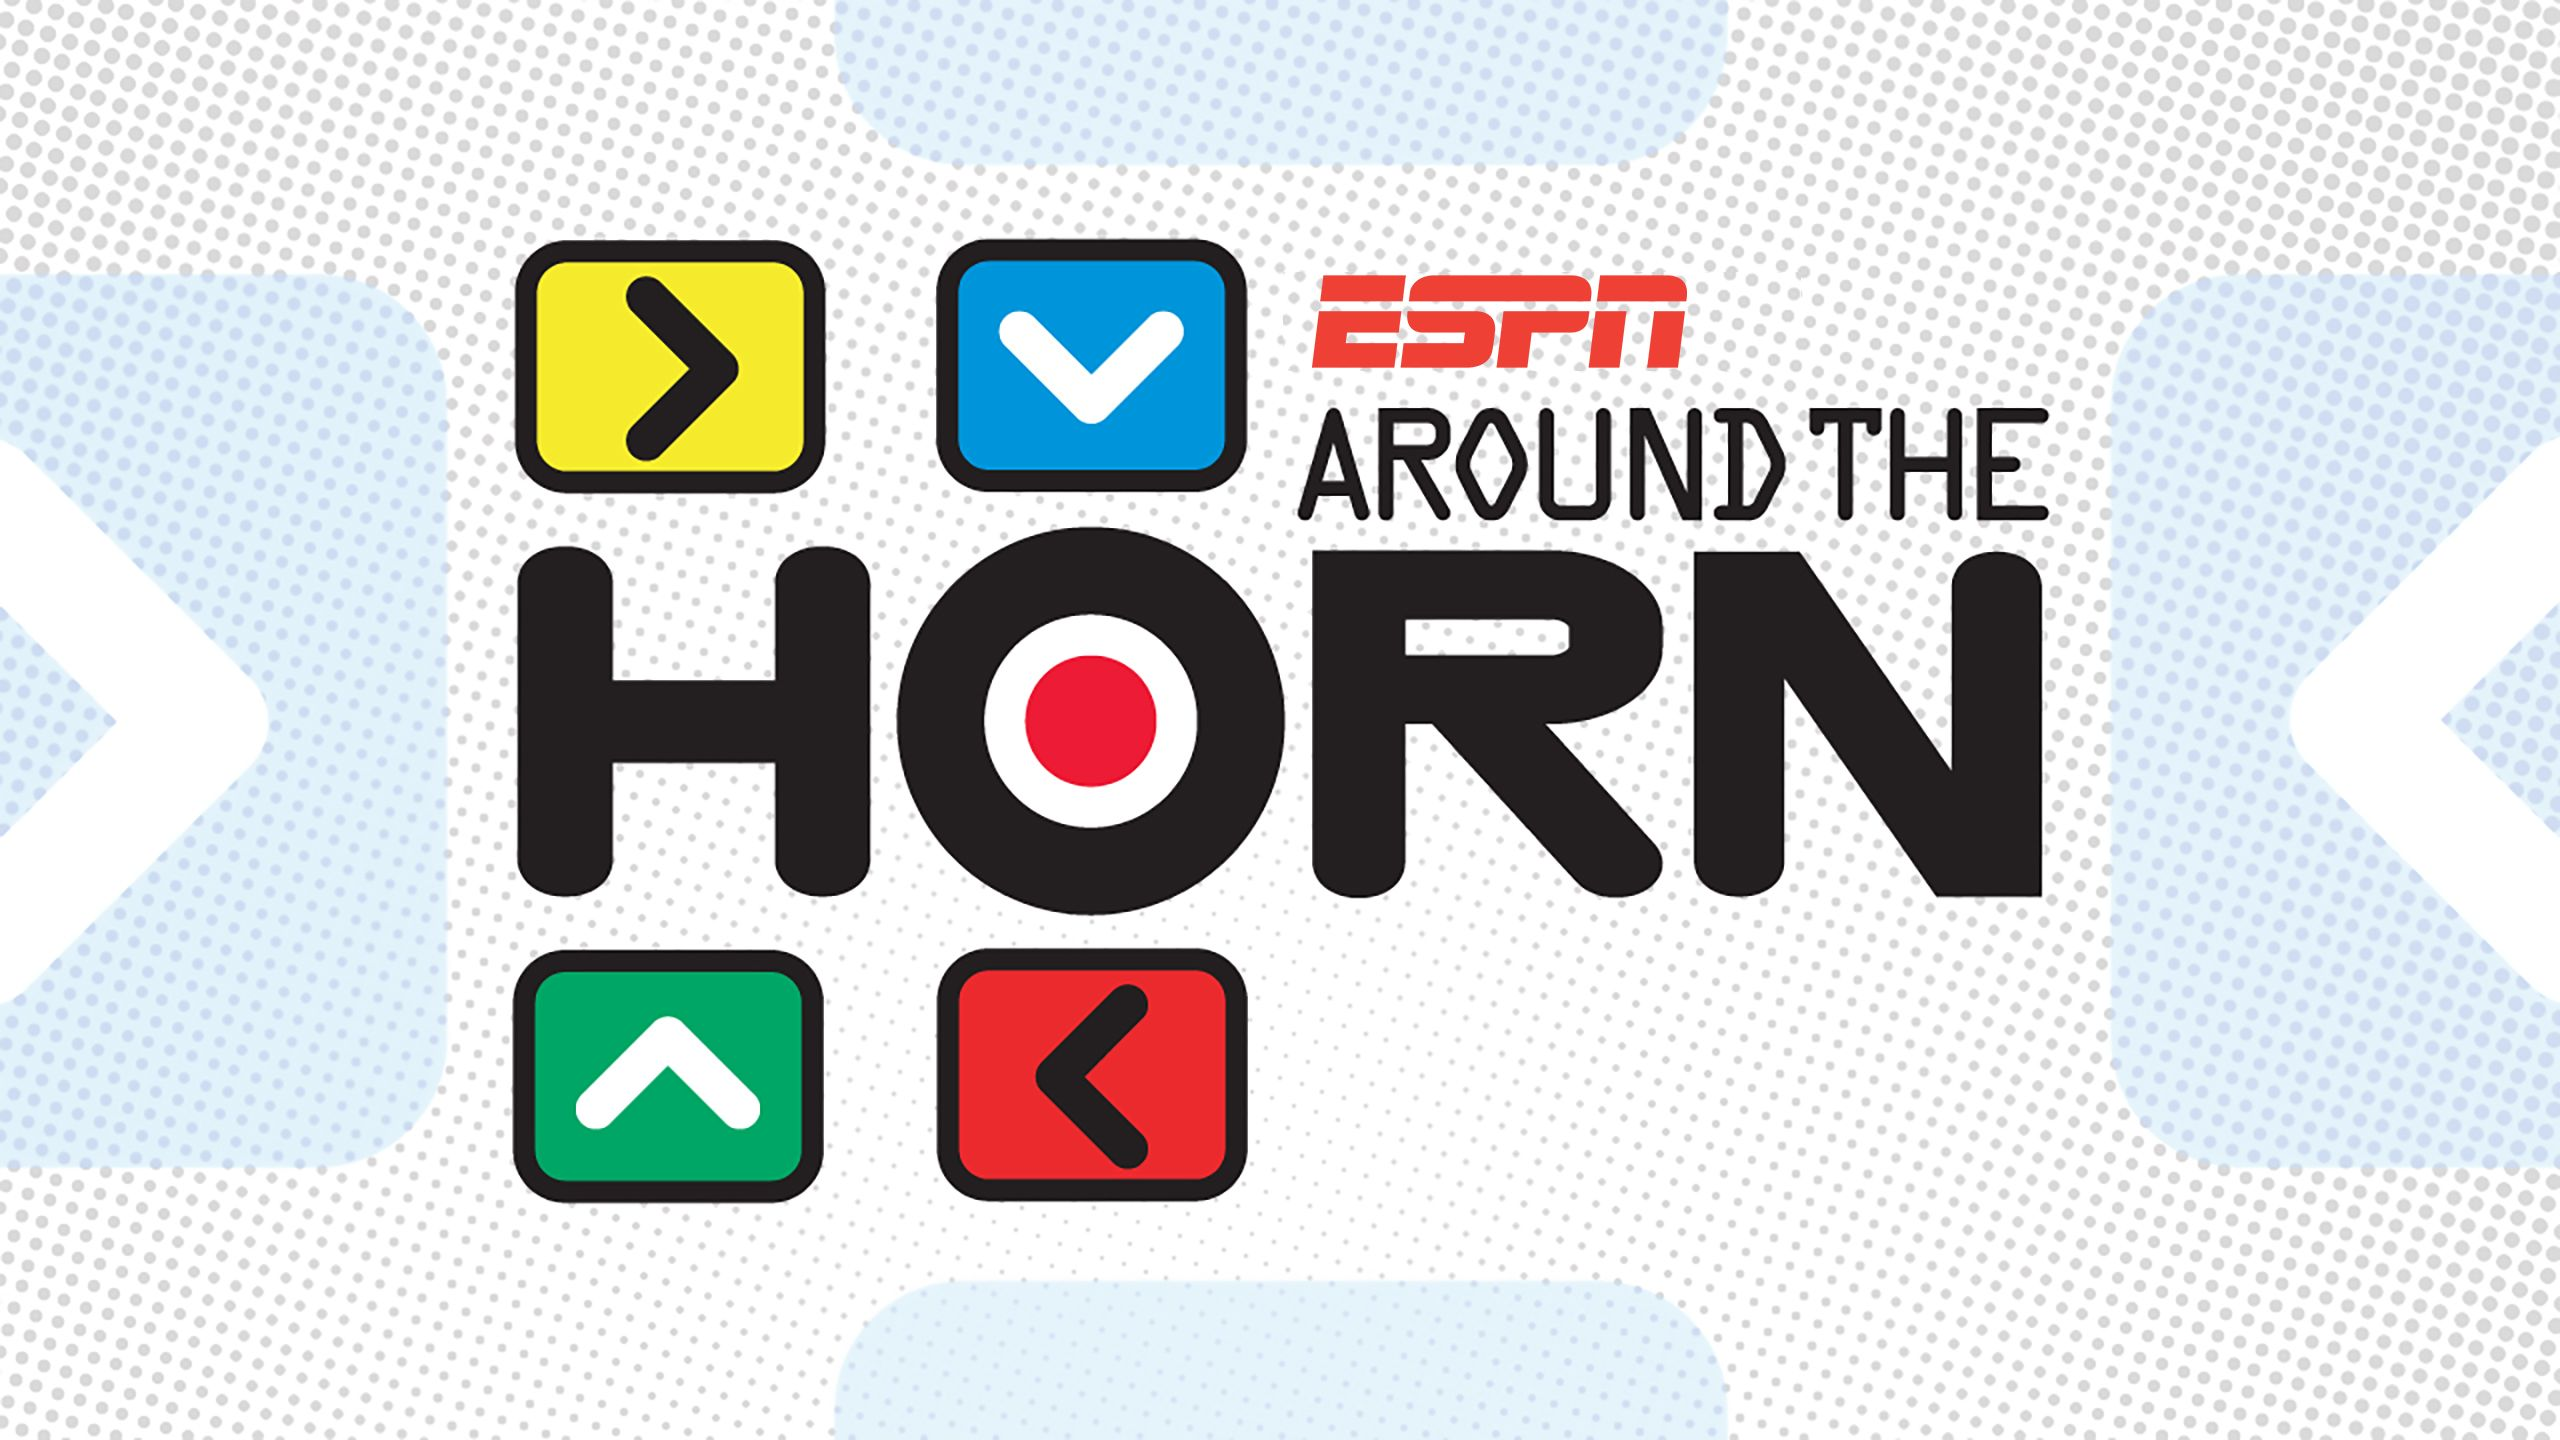 Thu, 2/22 - Around The Horn